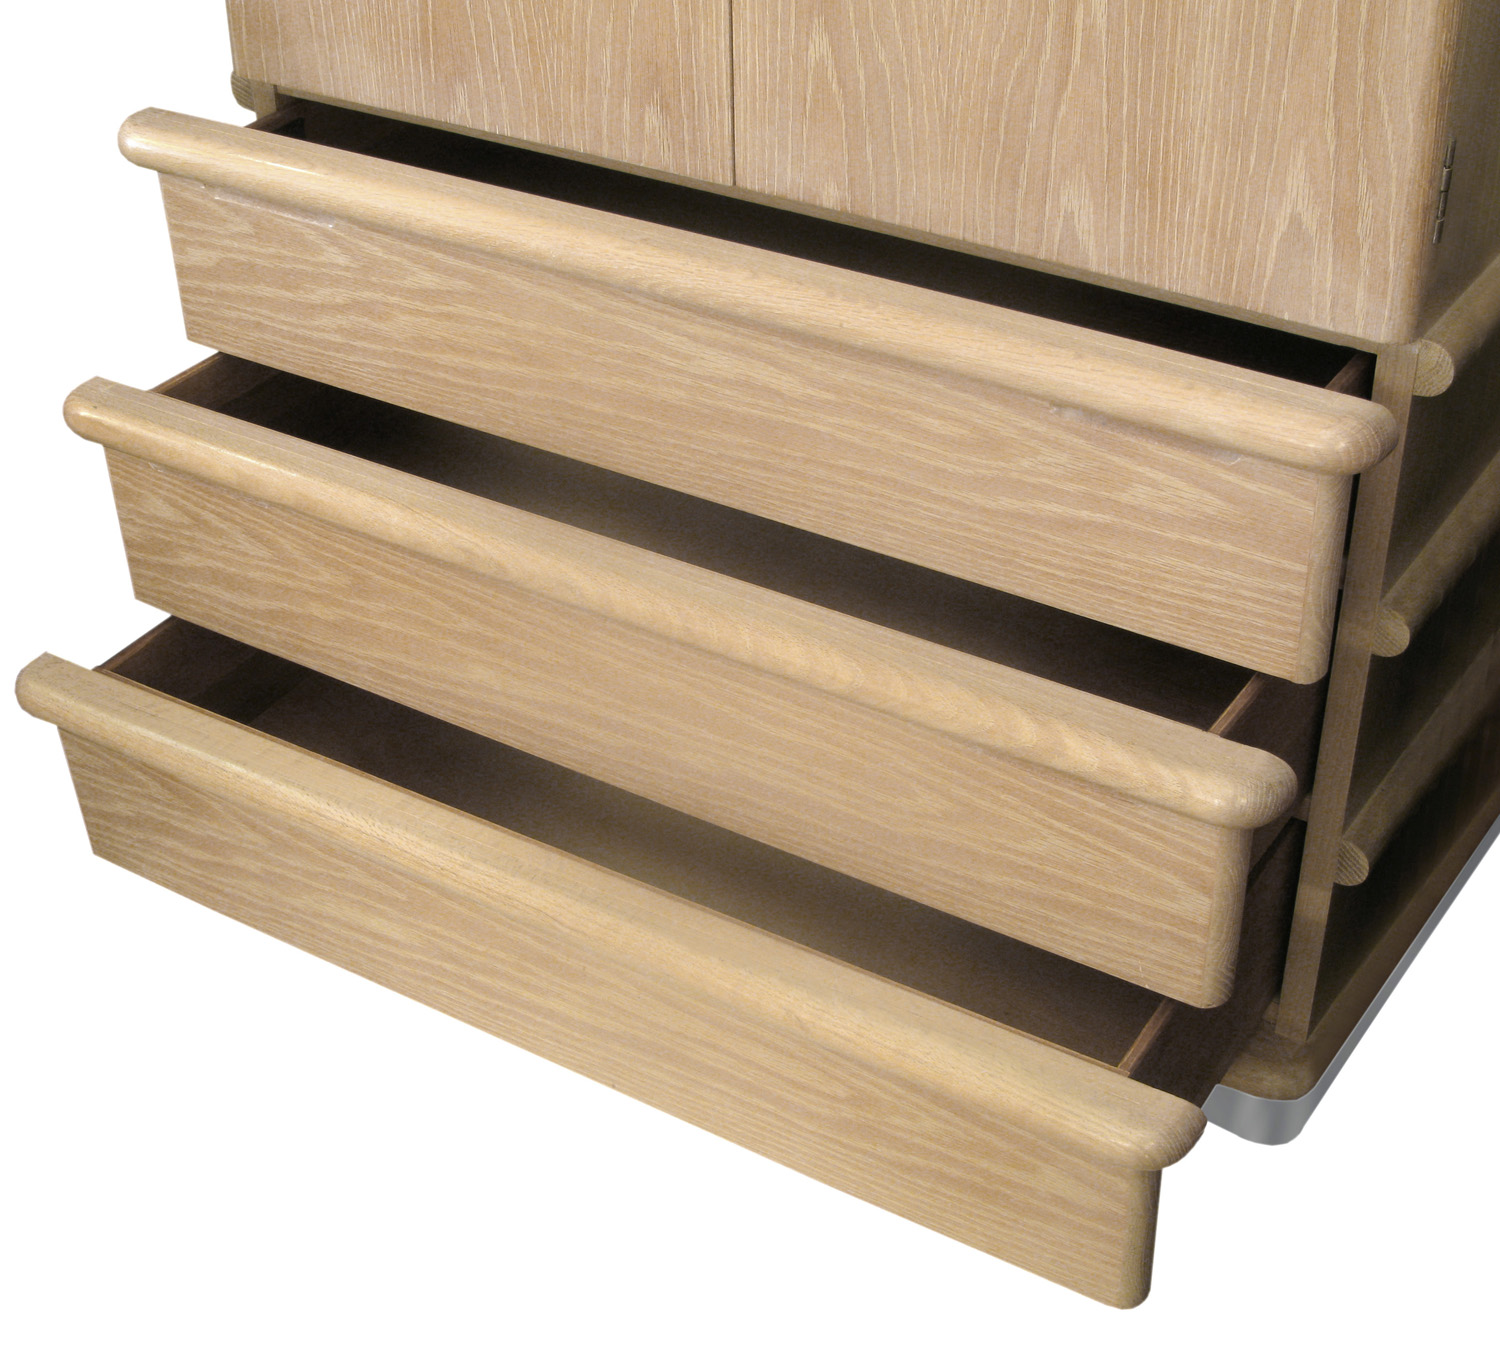 Spectre 75 blched oak high chestofdrawers109 drawers open hires.jpg